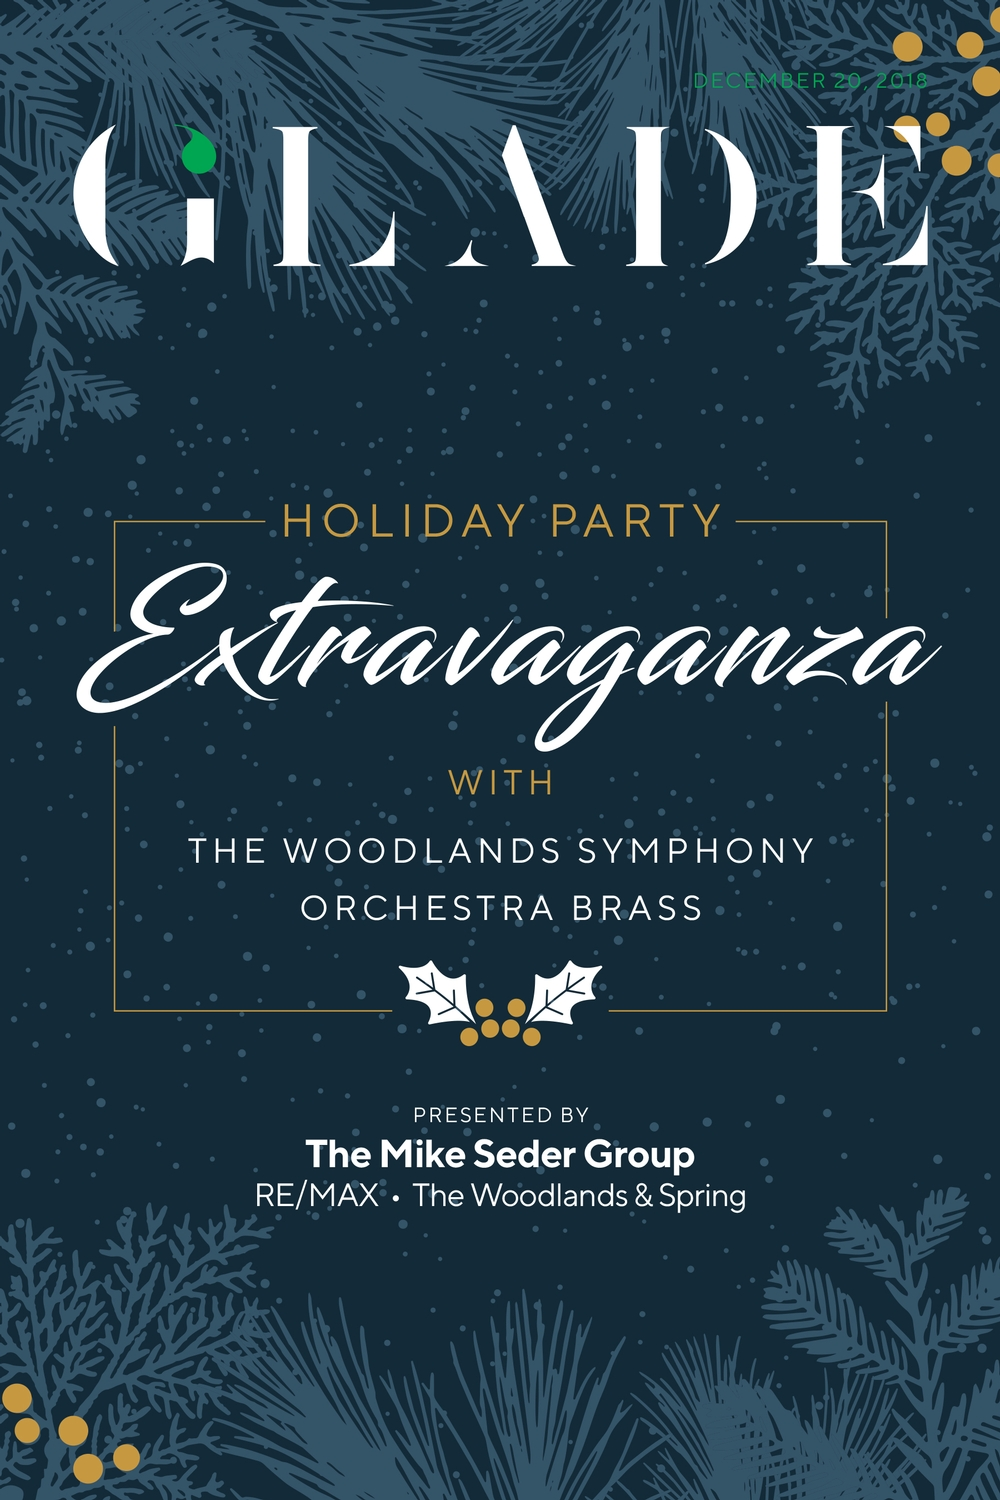 Holiday Party with Woodlands Symphony Orchestra